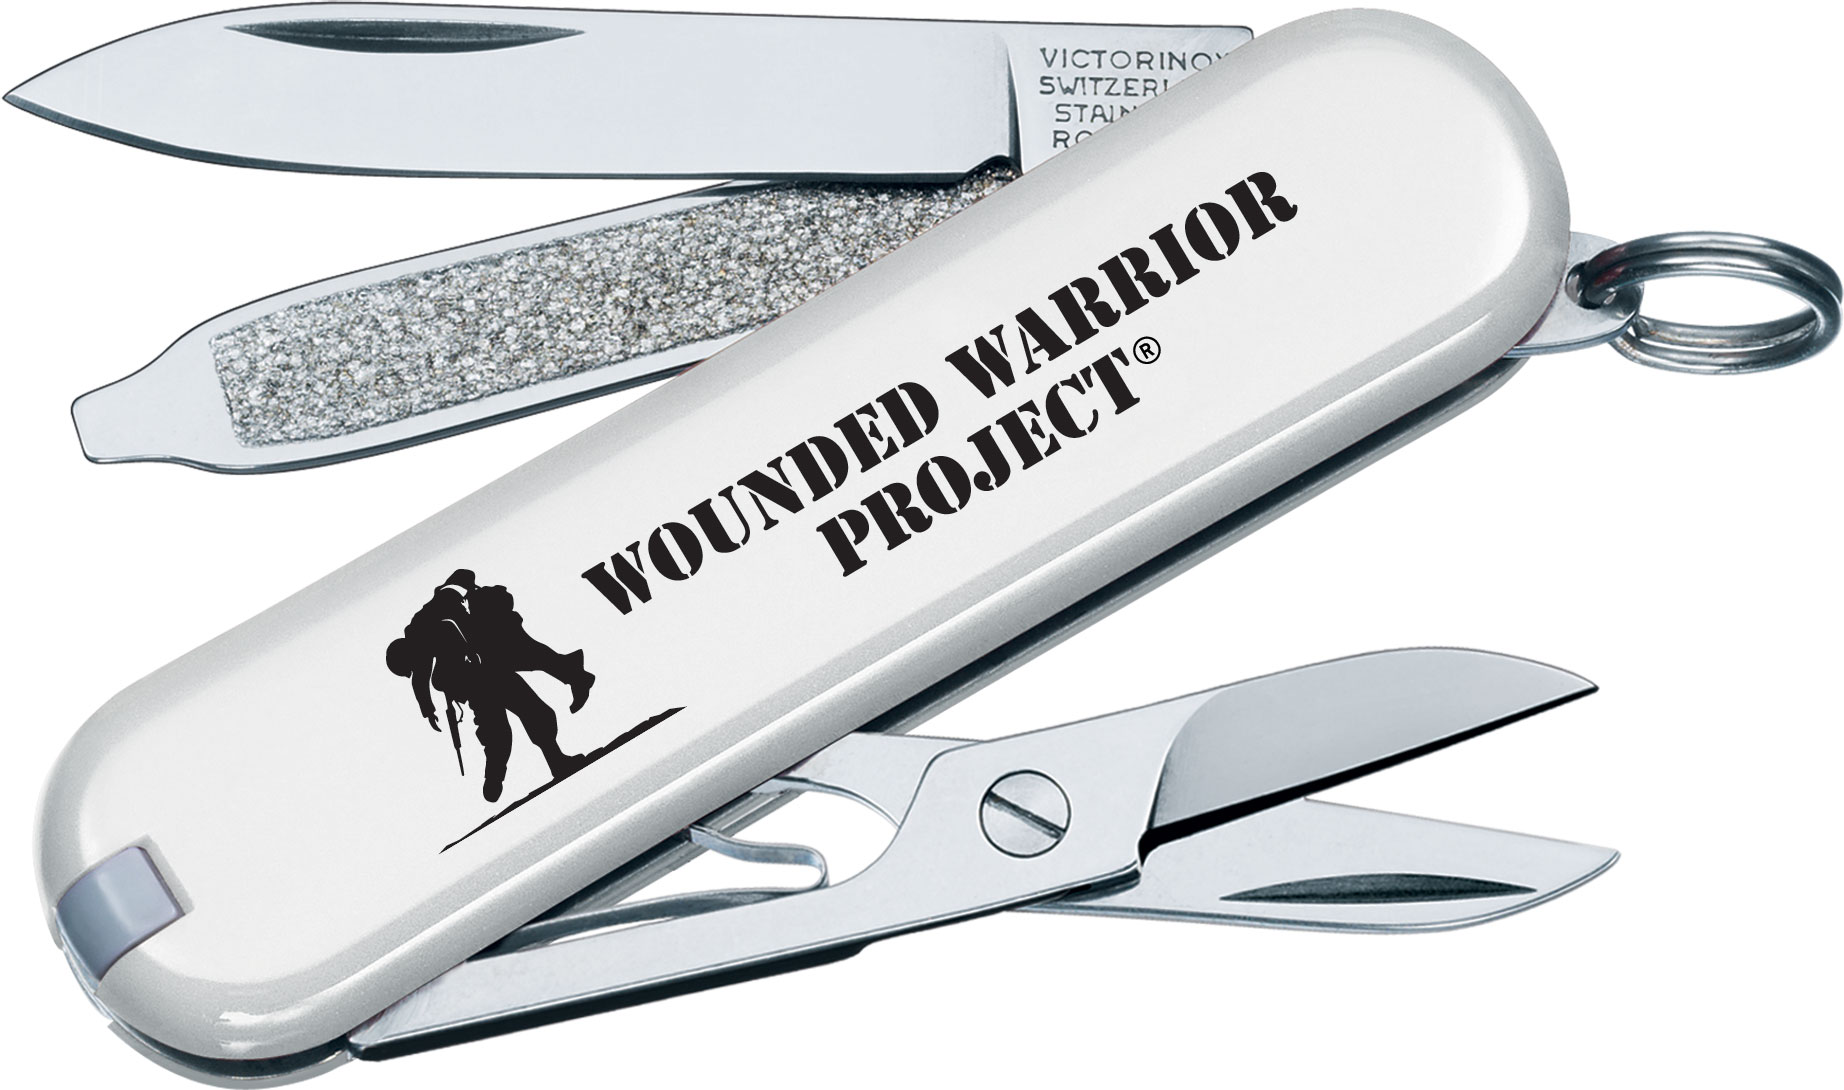 Victorinox Swiss Army Wounded Warrior Project Classic SD Multi-Tool, White, 2.25 inch Closed